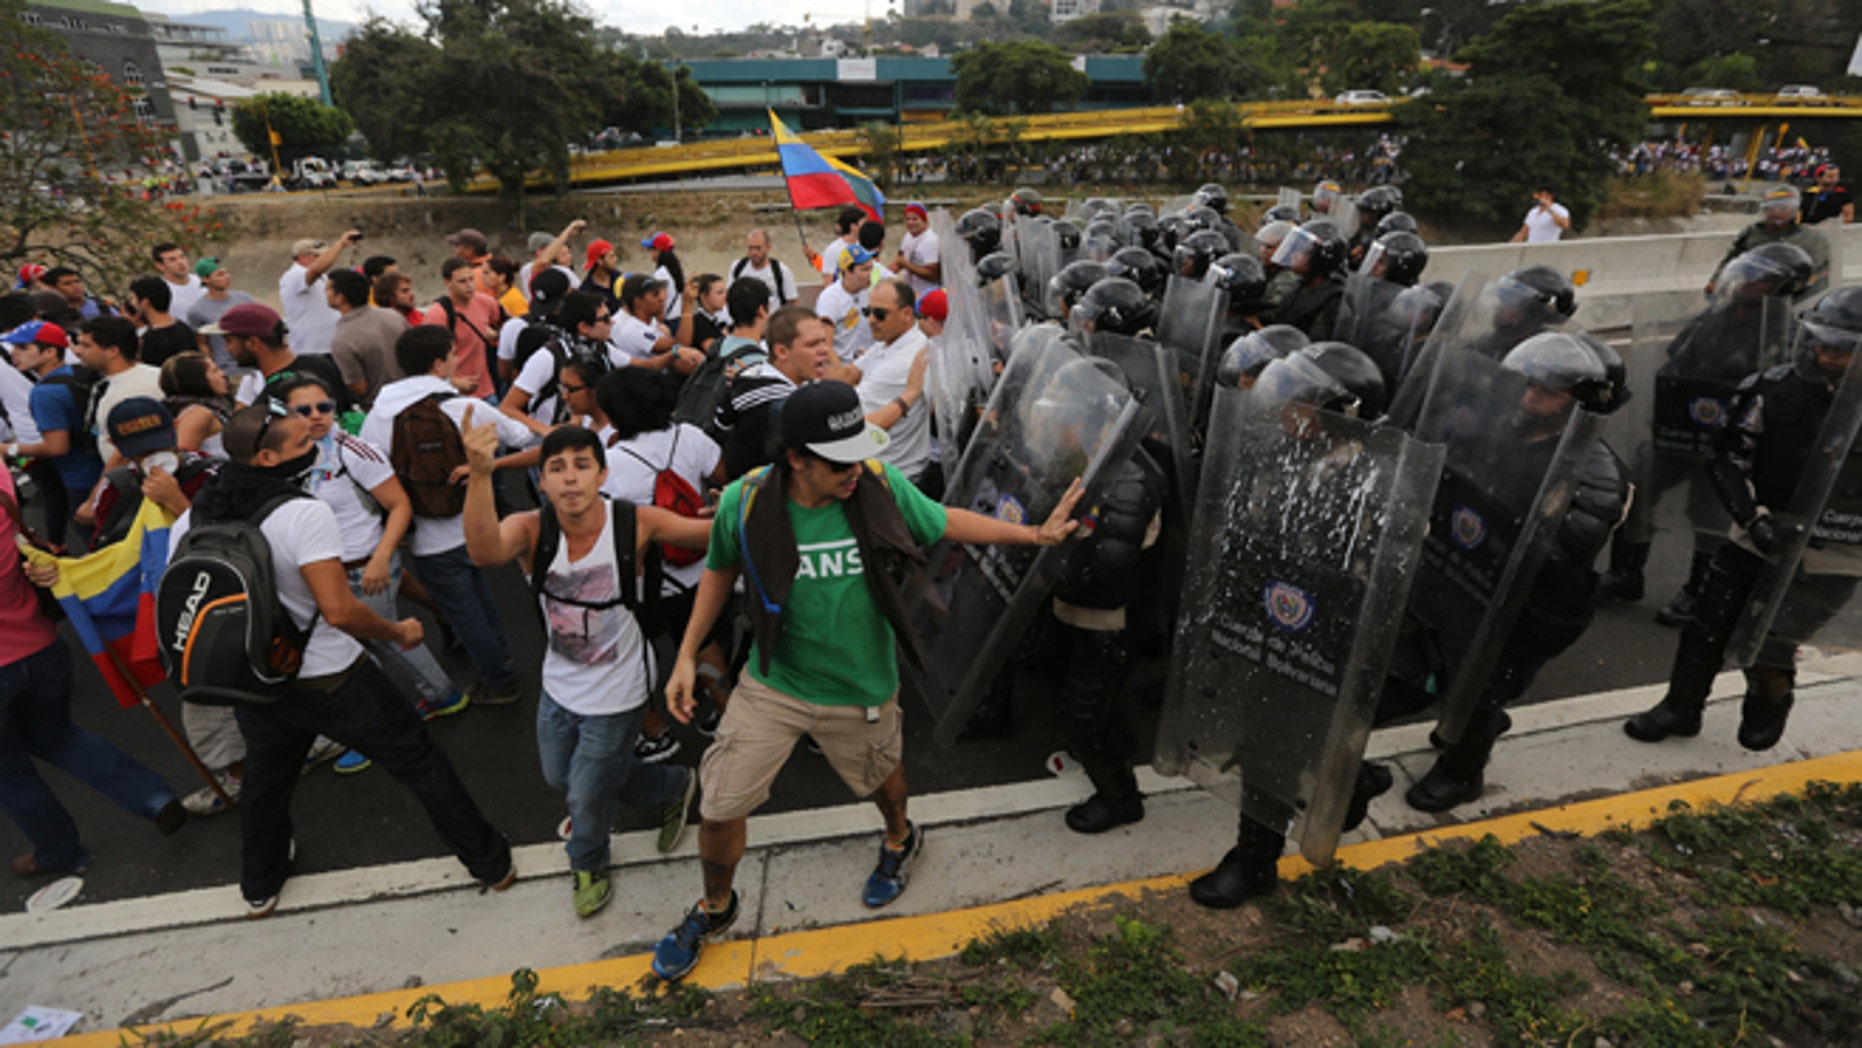 Bolivarian National Police officers push demonstrators to prevent them from blocking the Francisco Fajardo highway in Caracas, Venezuela, Thursday, Feb. 27, 2014. Anti-government protesters rallied to demand an end to the government crackdown on protests and the release of those jailed in recent weeks.  (AP Photo/Fernando Llano)